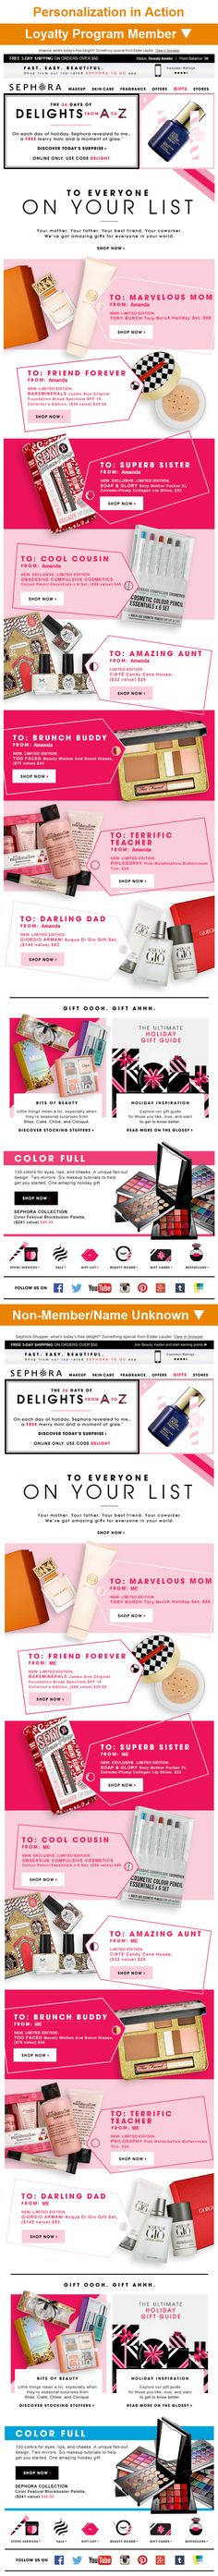 """Sephora >> sent 12/8/14 >> Amaze Them >> This Sephora email cleverly combines gift-recipient personas and first-name personalization by creating gift tags, which have the persona in the """"To"""" line and my name in the """"From"""" line. The tactic helps the subscriber envision themselves giving the gift. Plus, Sephora wisely uses """"Me"""" as the fallback when they don't know the subscriber's name so it doesn't ruin the gift tag setup. —Amanda Miller, Senior Marketing Consultant, Salesforce Marketing…"""